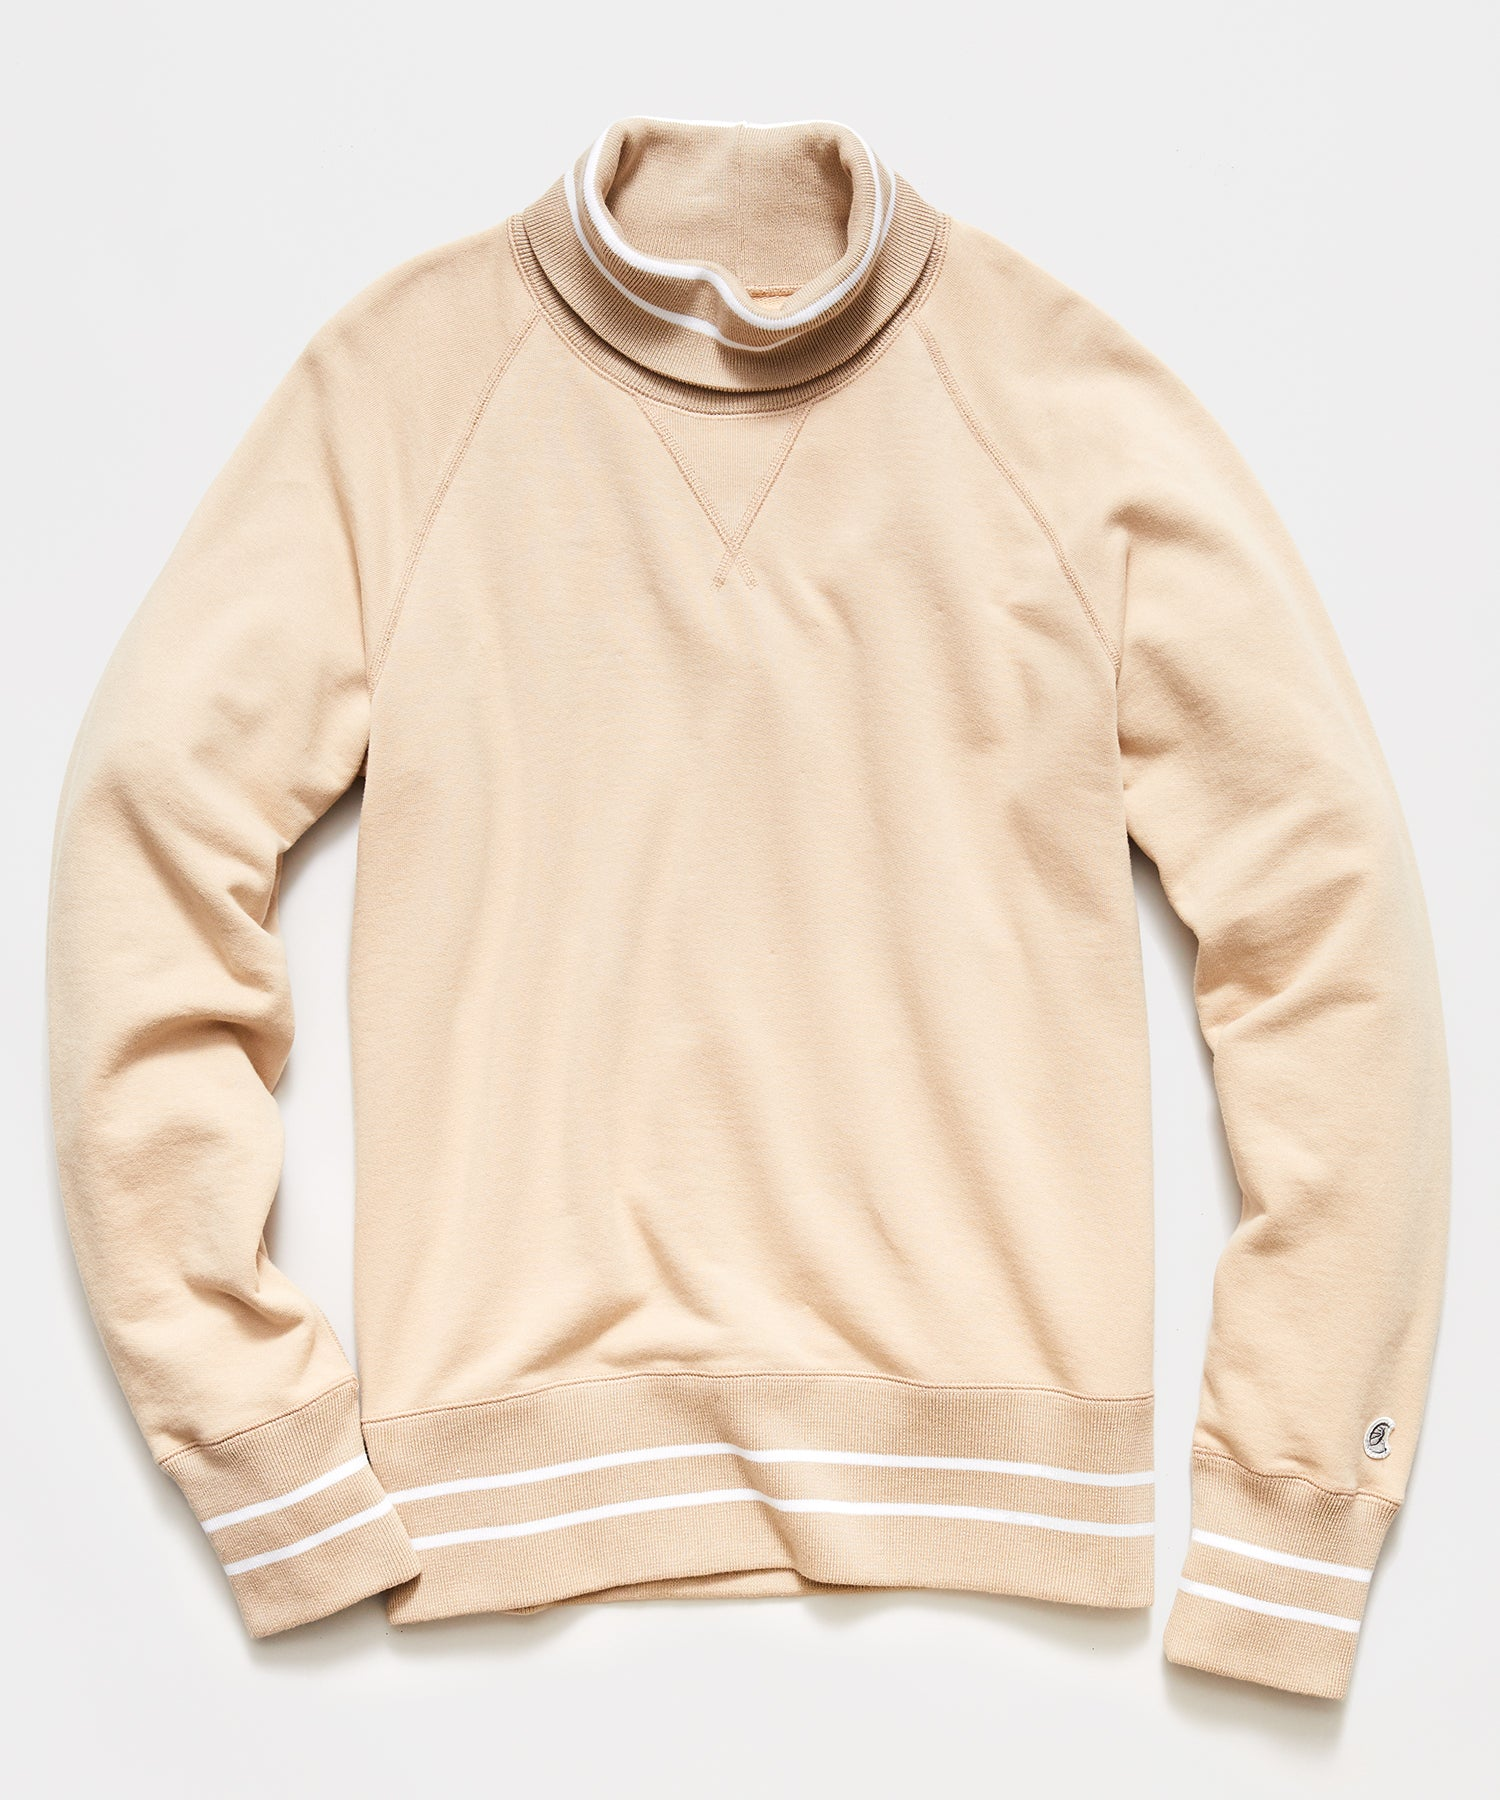 Tipped Turtleneck Sweatshirt in Sand